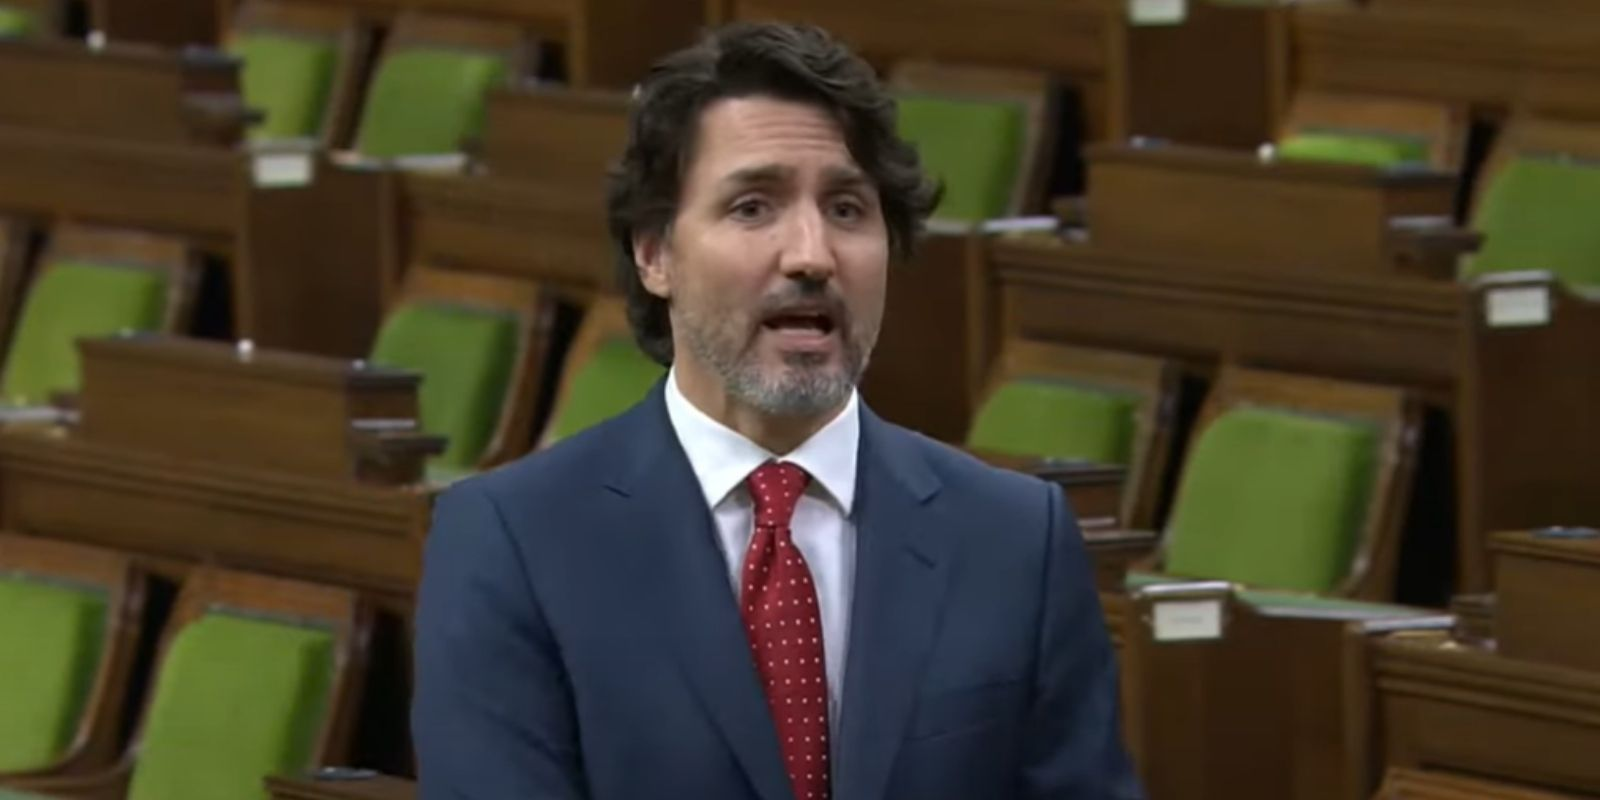 GASLIGHTING: Trudeau accuses Canadians concerned with internet censorship of wearing 'tin foil hats'